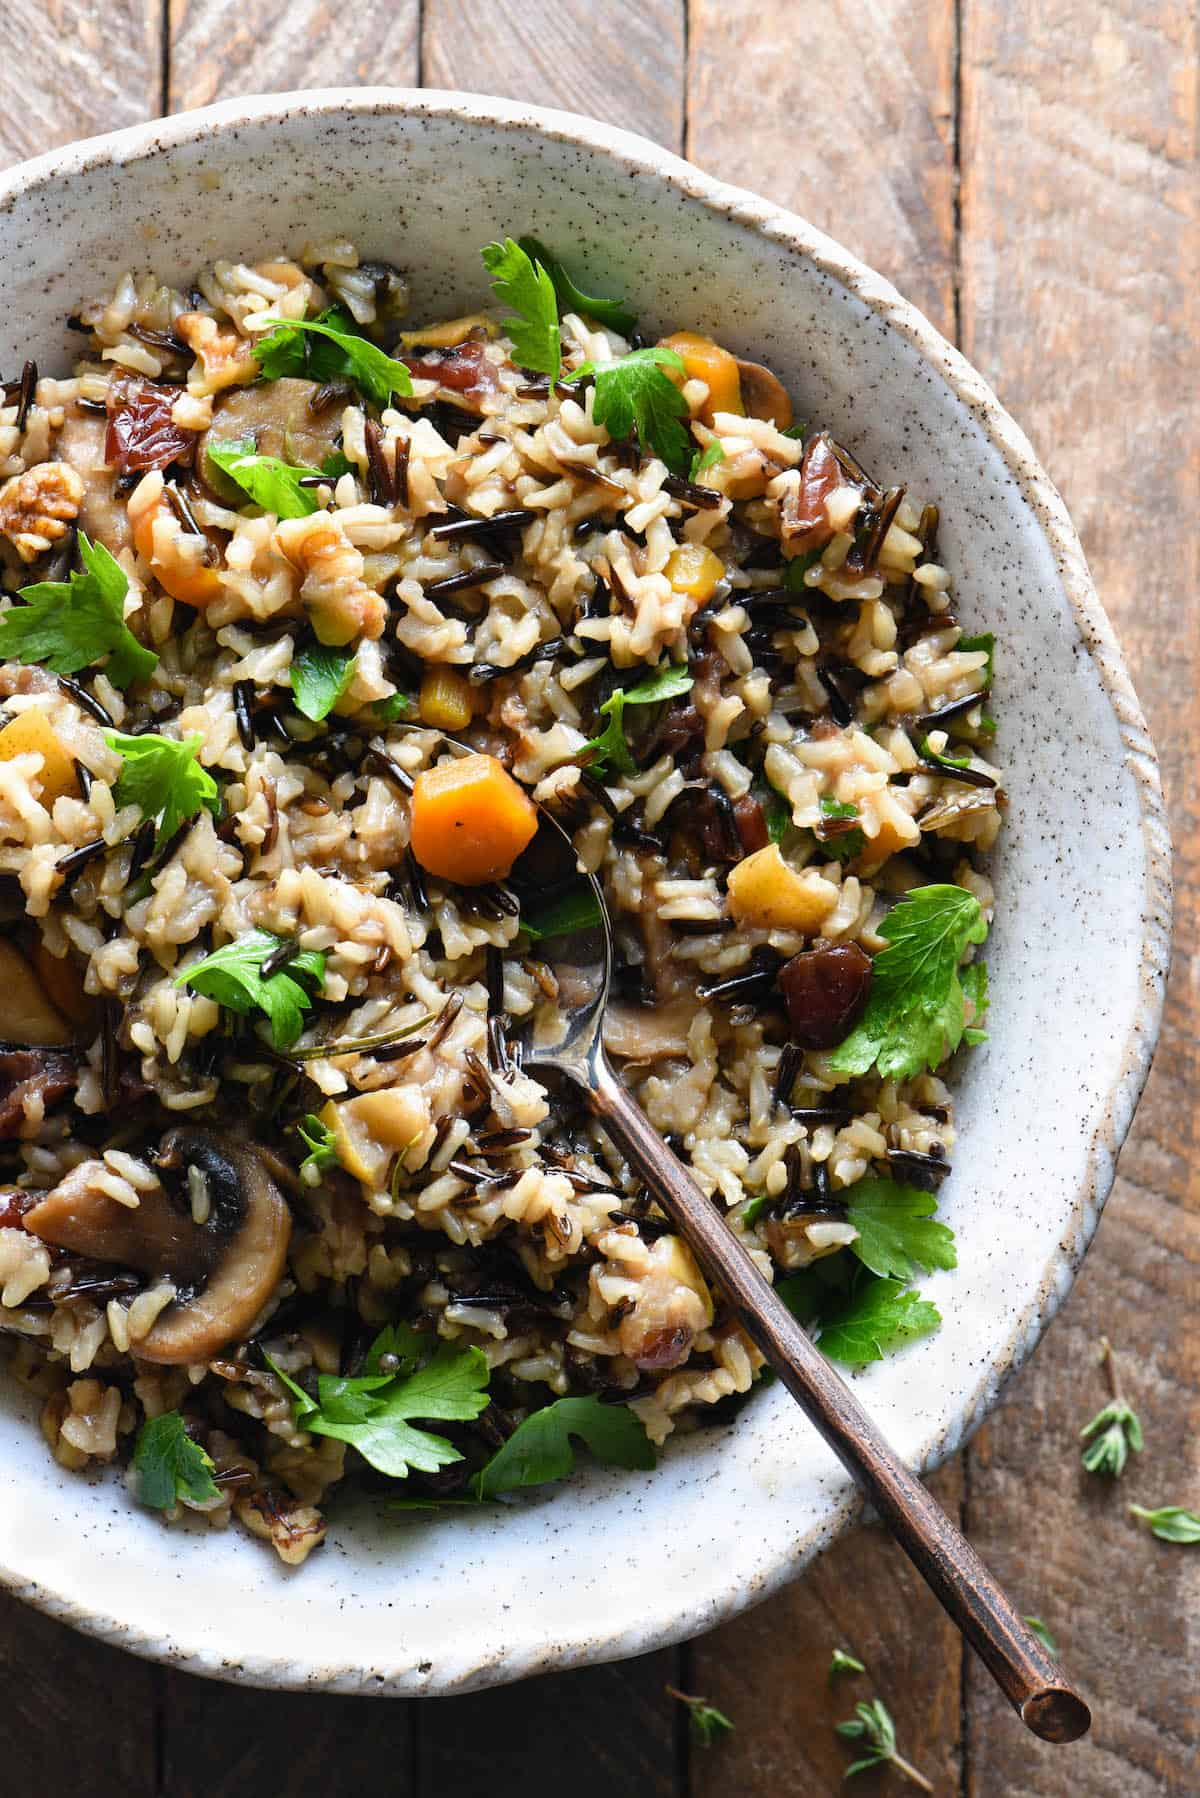 Bring a delicious but unexpected side dish to your table by making this Thanksgiving Rice Pilaf with Cranberries & Pears. This brown rice and wild rice pilaf is packed with fruit, nuts and herbs for the perfect balance of savory and sweet. | foxeslovelemons.com